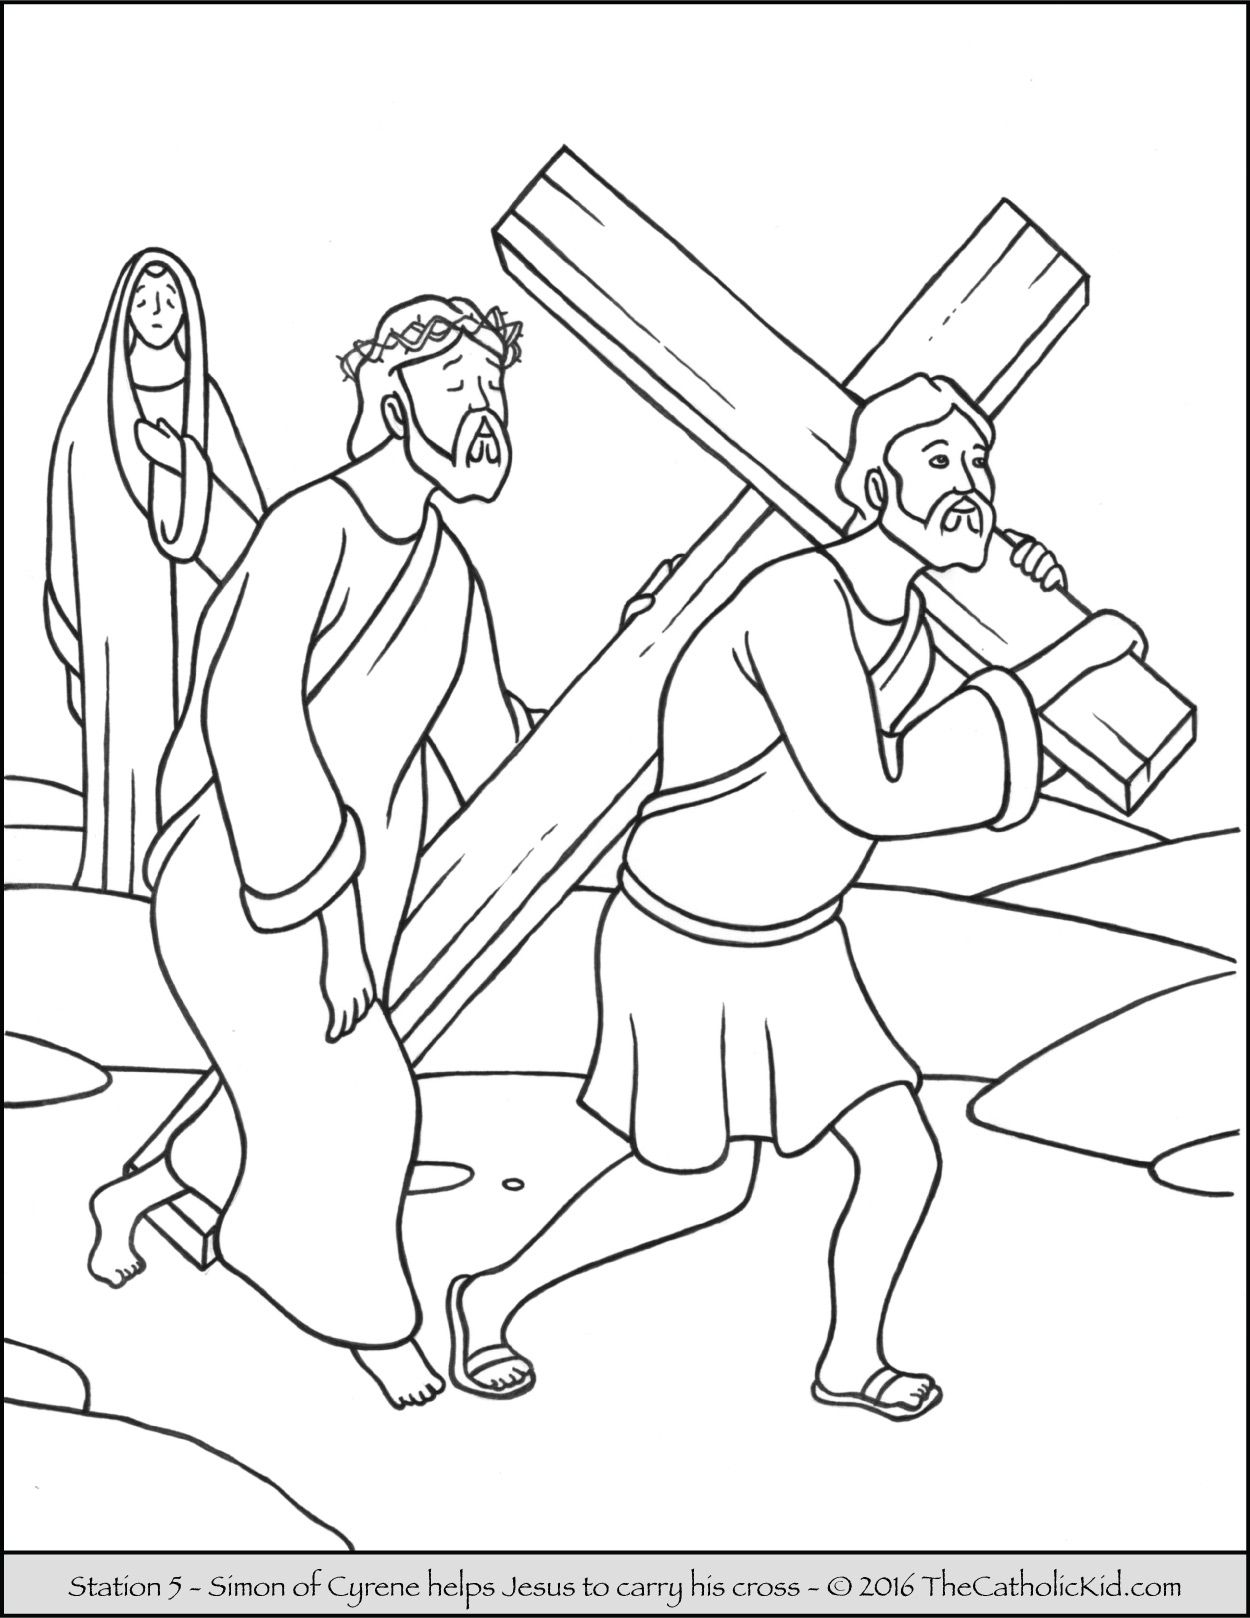 Stations Of The Cross Coloring Pages 5 Simon Of Cyrene Helps Jesus